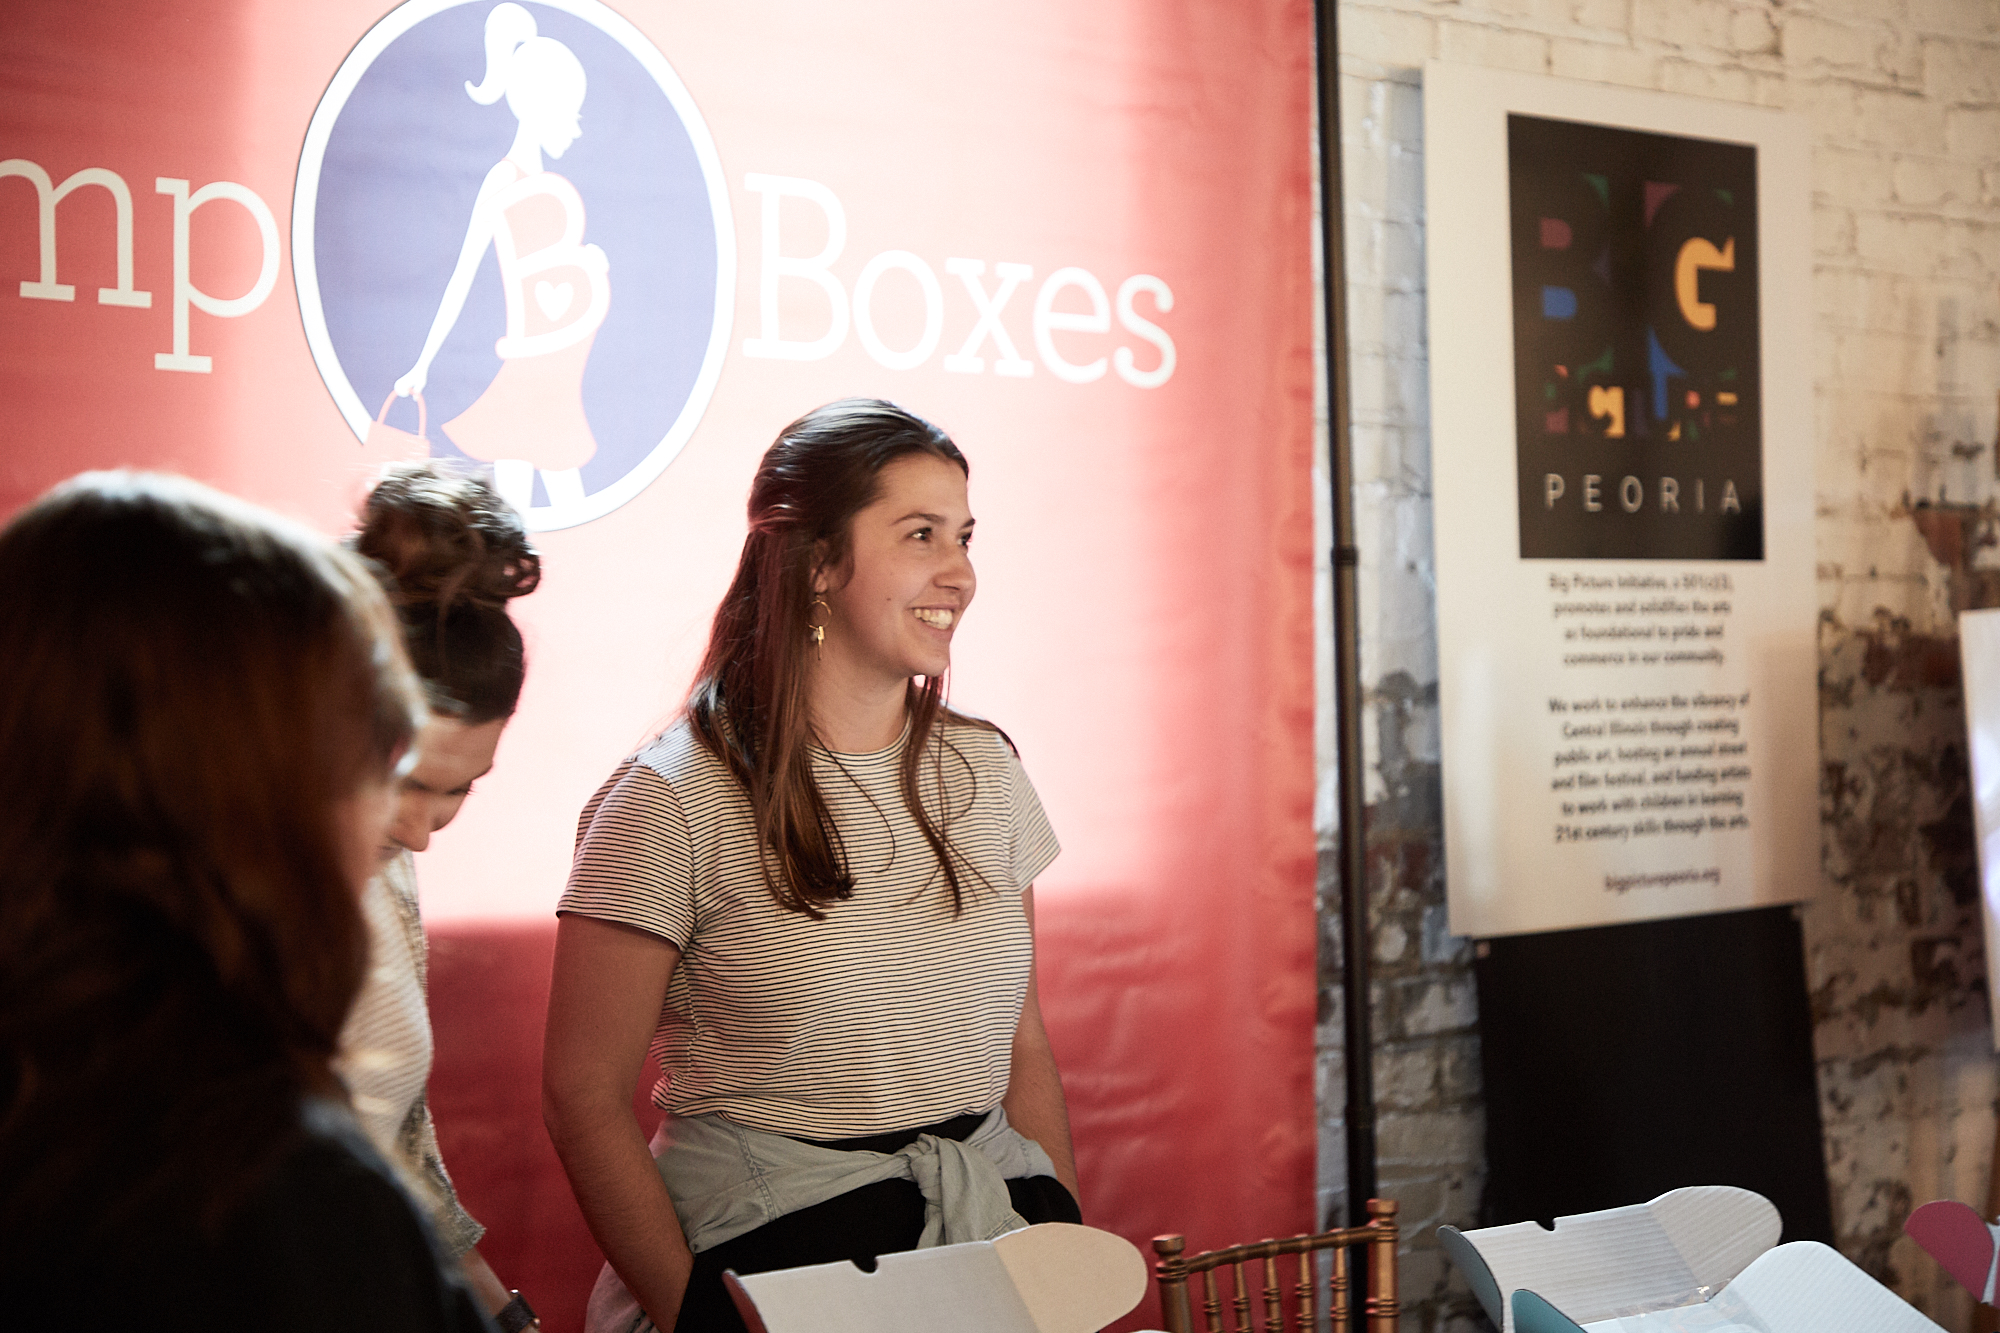 A Bump Boxes employee talks with guests at the Peoria Innovation Alliance launch event.